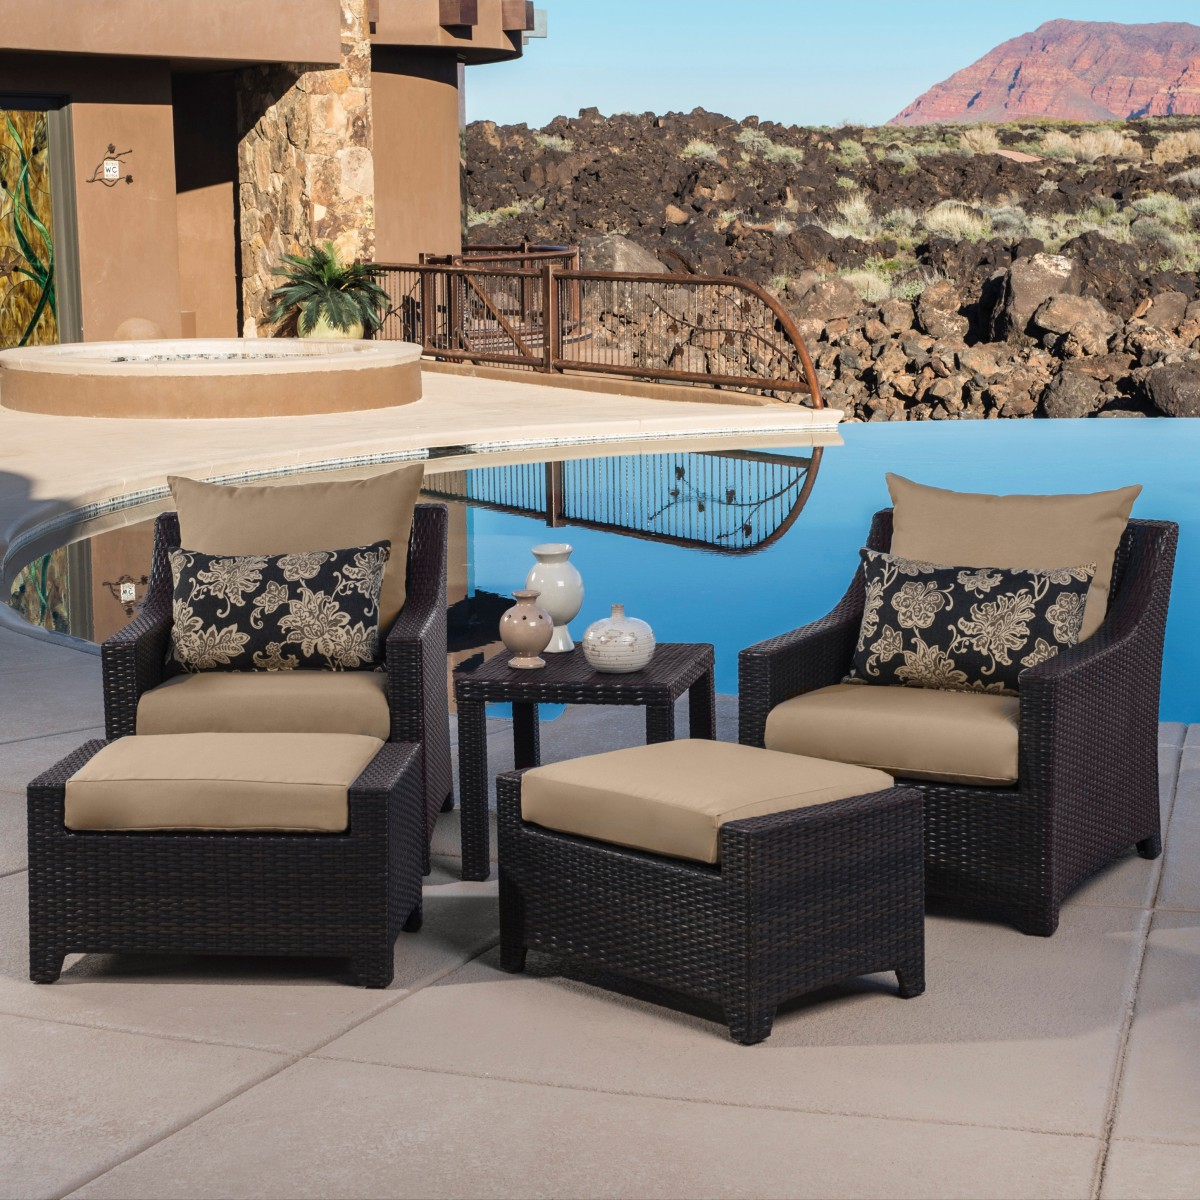 Delano 5 piece Outdoor Chair and Ottoman with Side Table Set Patio Table